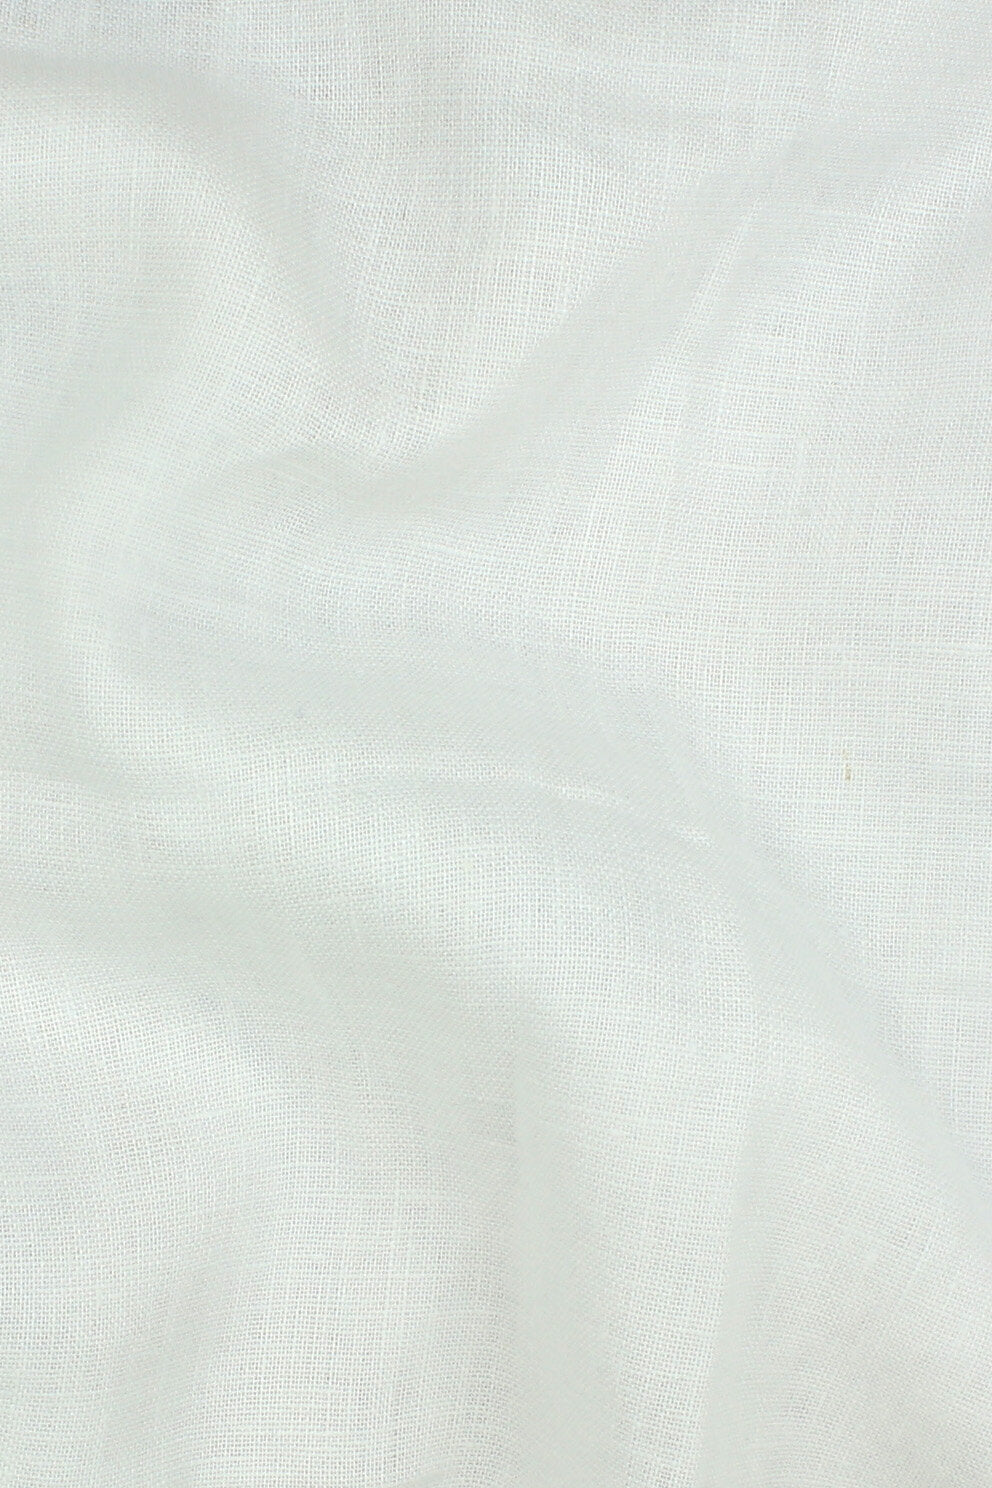 Vivaldi Linen Optic White